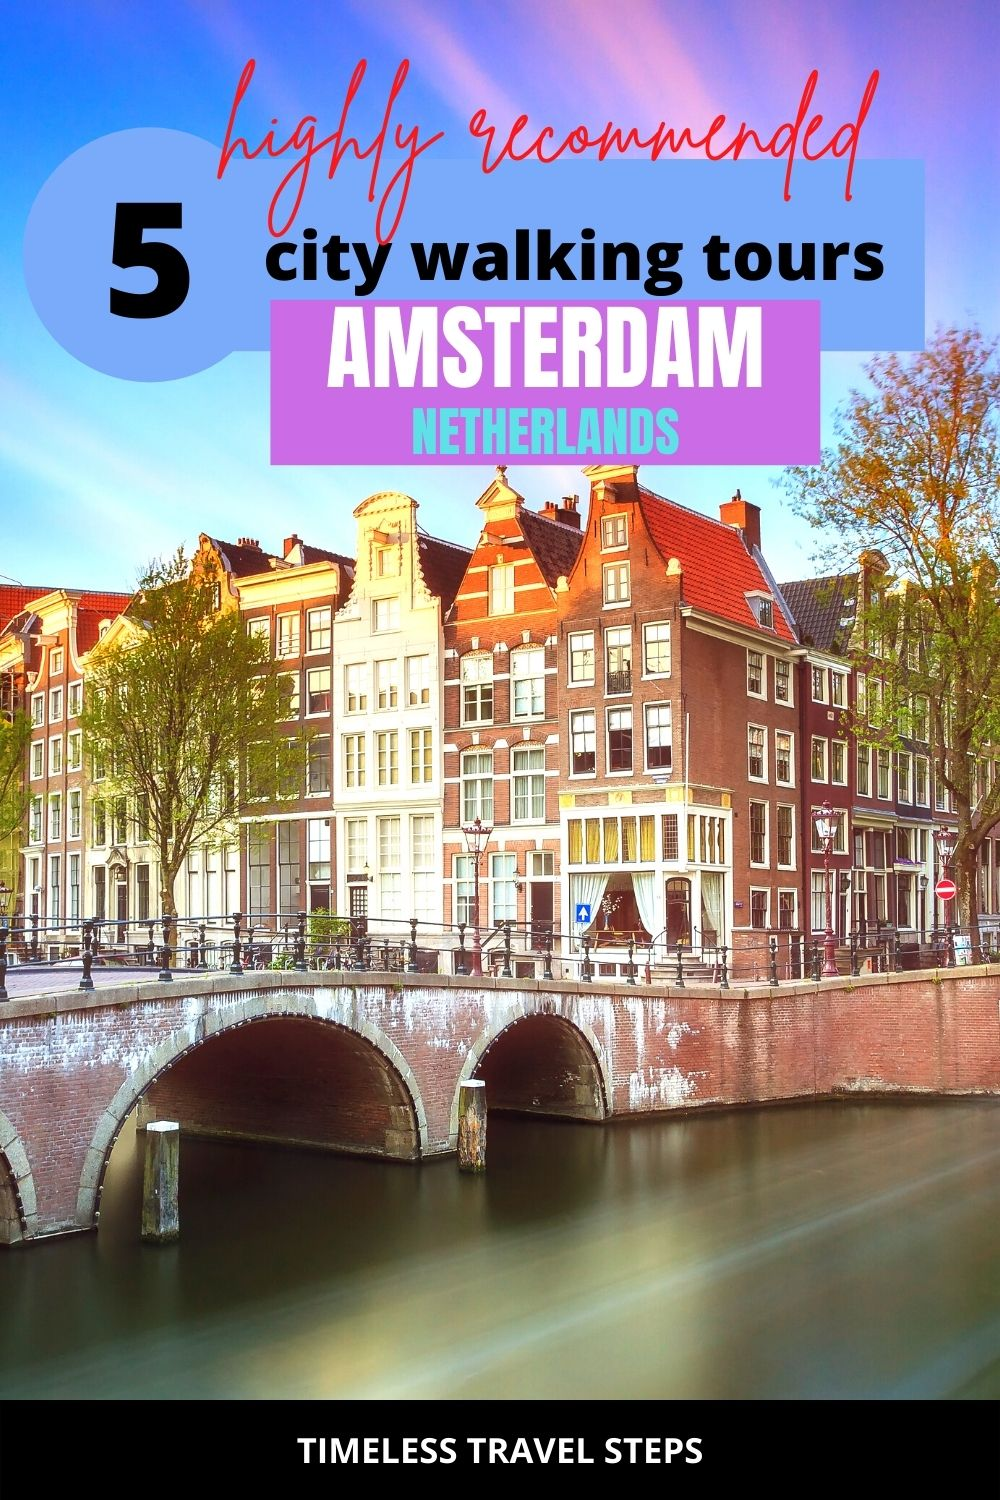 Amsterdam city | Amsterdam tours | City tours in Amsterdam | Walking tours in Amsterdam | Inspiring European city | Highlights of Amsterdam | Amsterdam city highlights | Things to do in Amsterdam | Historic sights in Amsterdam | Visit Amsterdam | Amsterdam for a weekend | 48 hours in Amsterdam | Things to do in Amsterdam over a weekend | Short break in Amsterdam | Introduction to Amsterdam | Great tours for first timers to Amsterdam |  Must-do city walking tours in Amsterdam for first timers | via @GGeorgina_timelesstravelsteps/